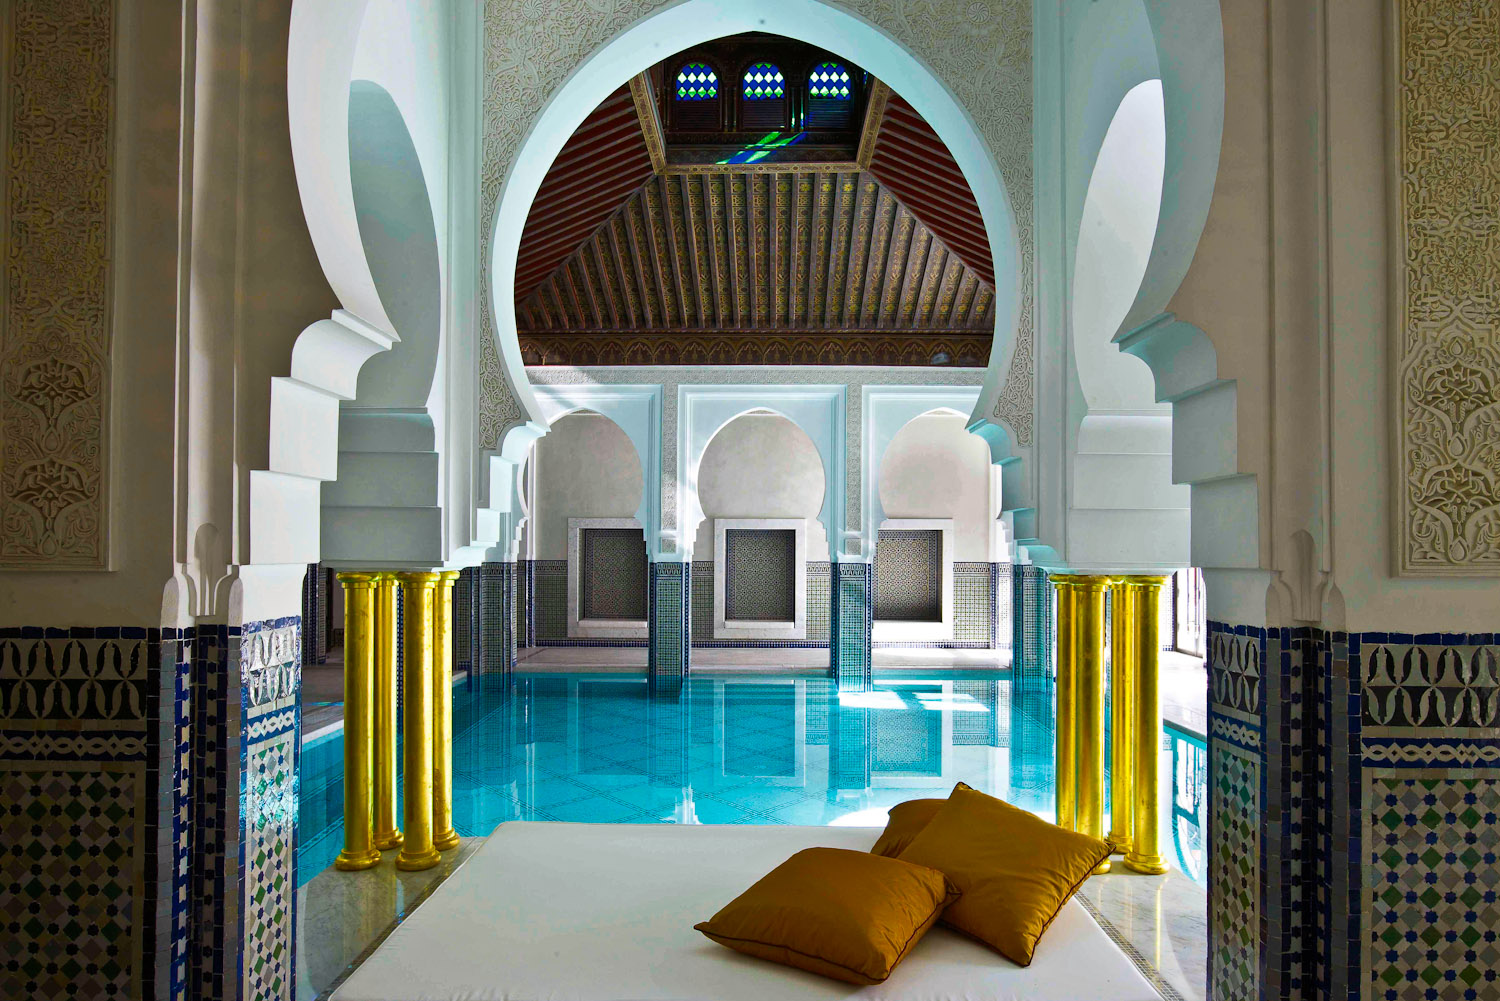 40 la mamounia marrakesh morocco international for Hotel design paris spa